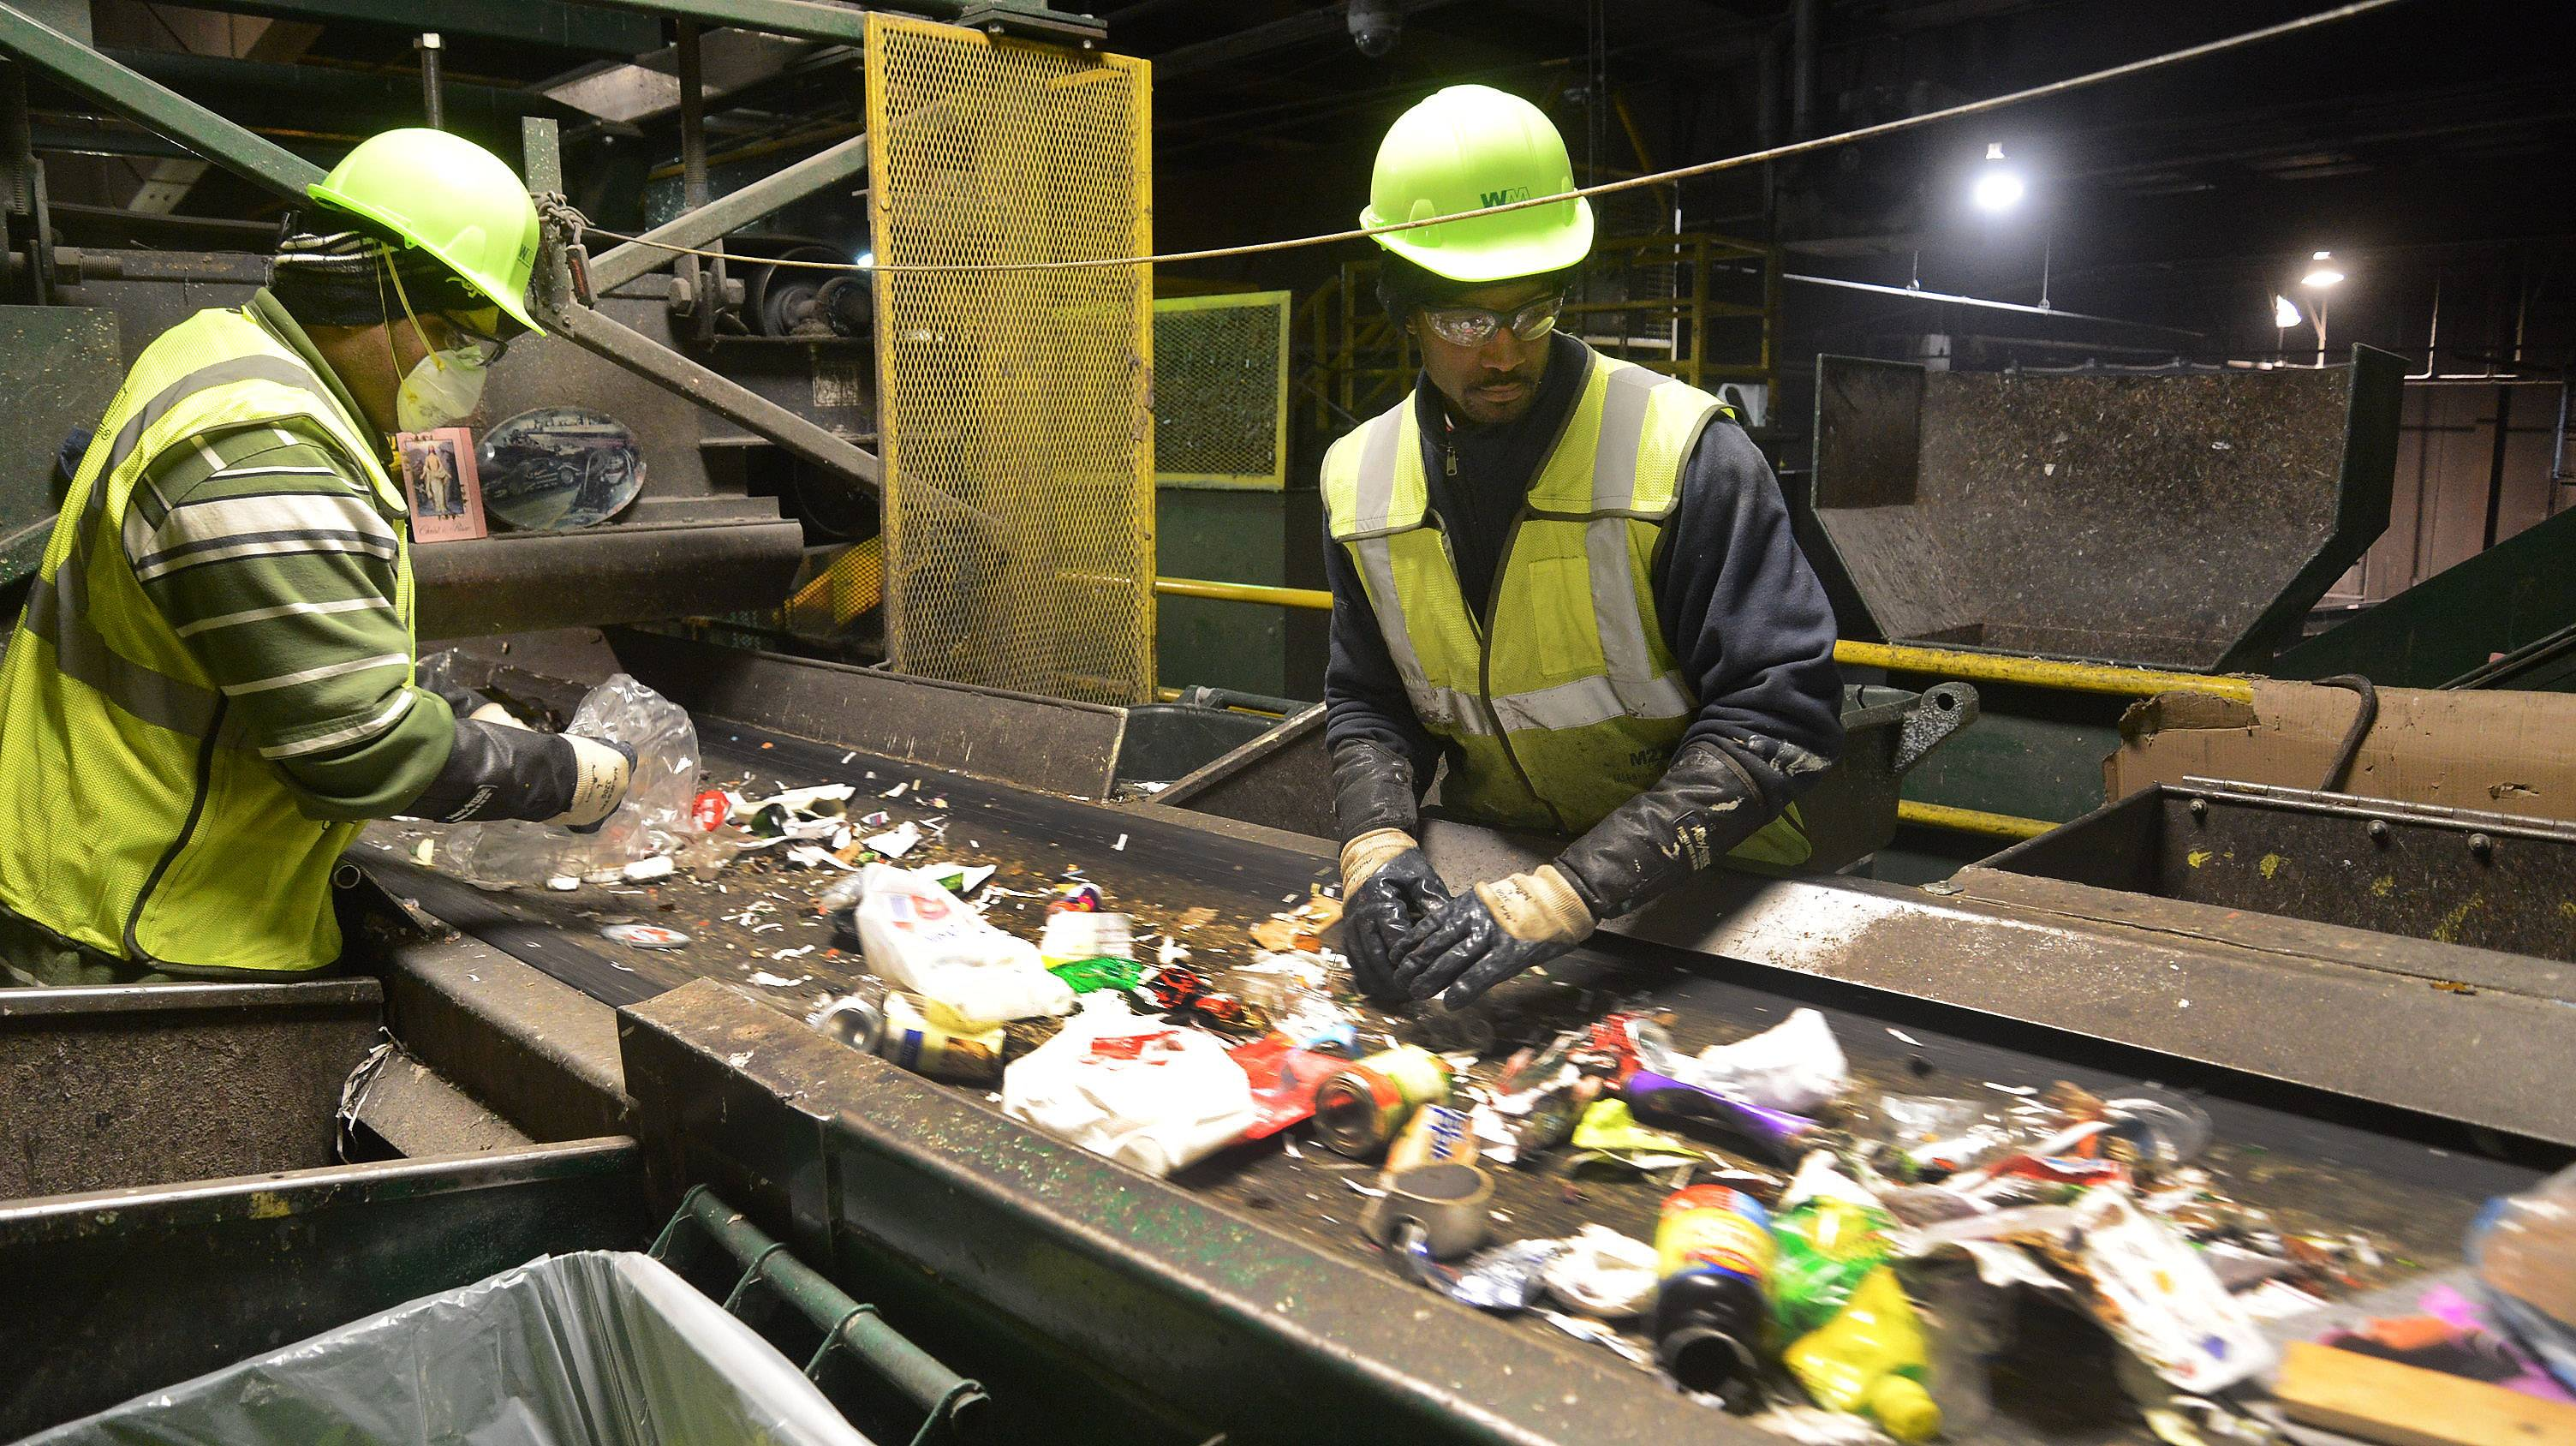 Sorters sift through refuse at the Waste Management Recycle America Lake County Processing Facility in Grayslake.